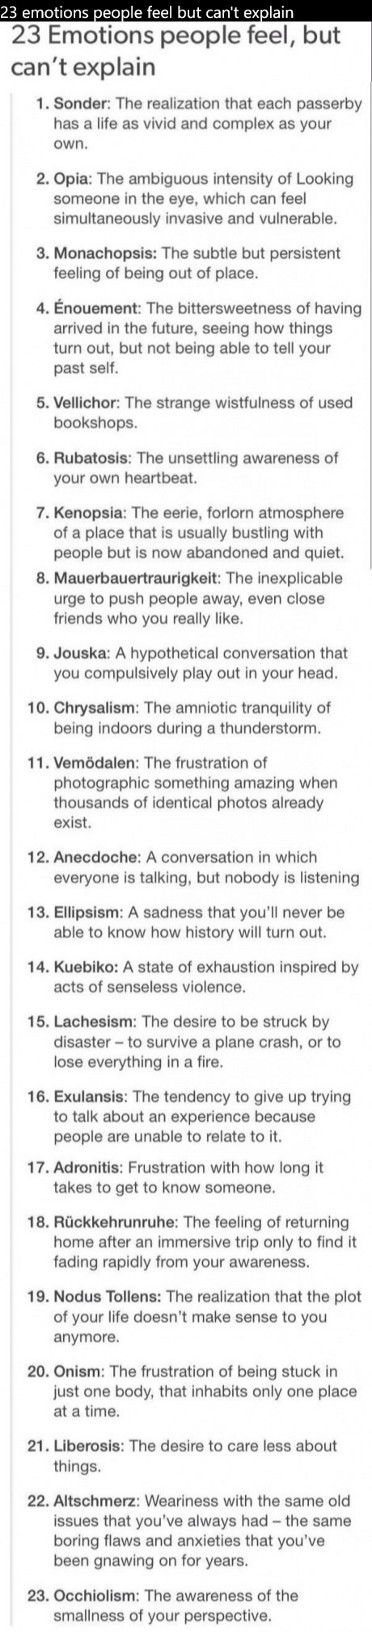 I relate to #1, #5, #6, #9, #23